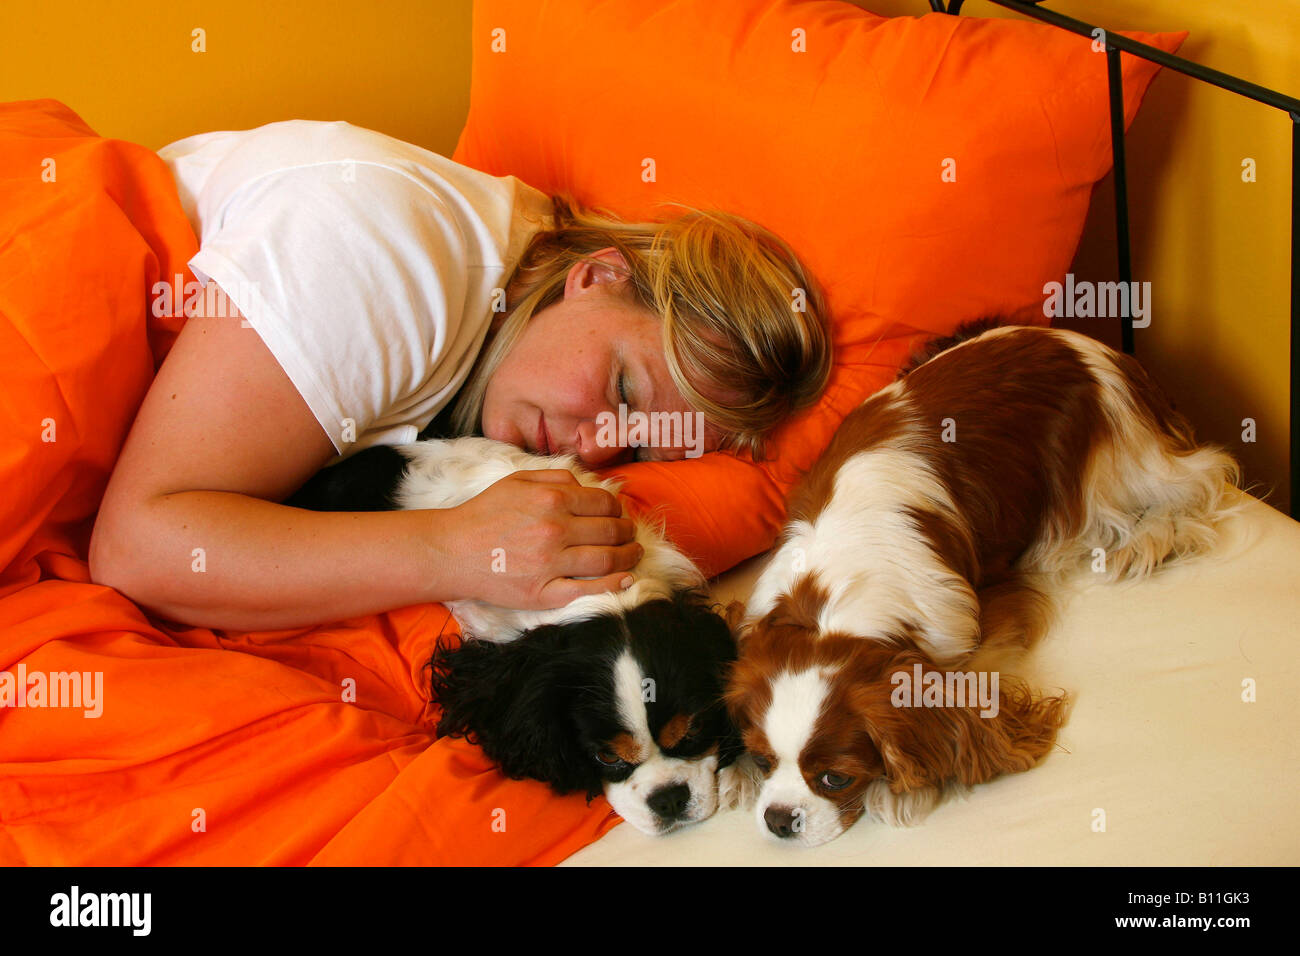 Woman and Cavalier King Charles Spaniel in bed - Stock Image